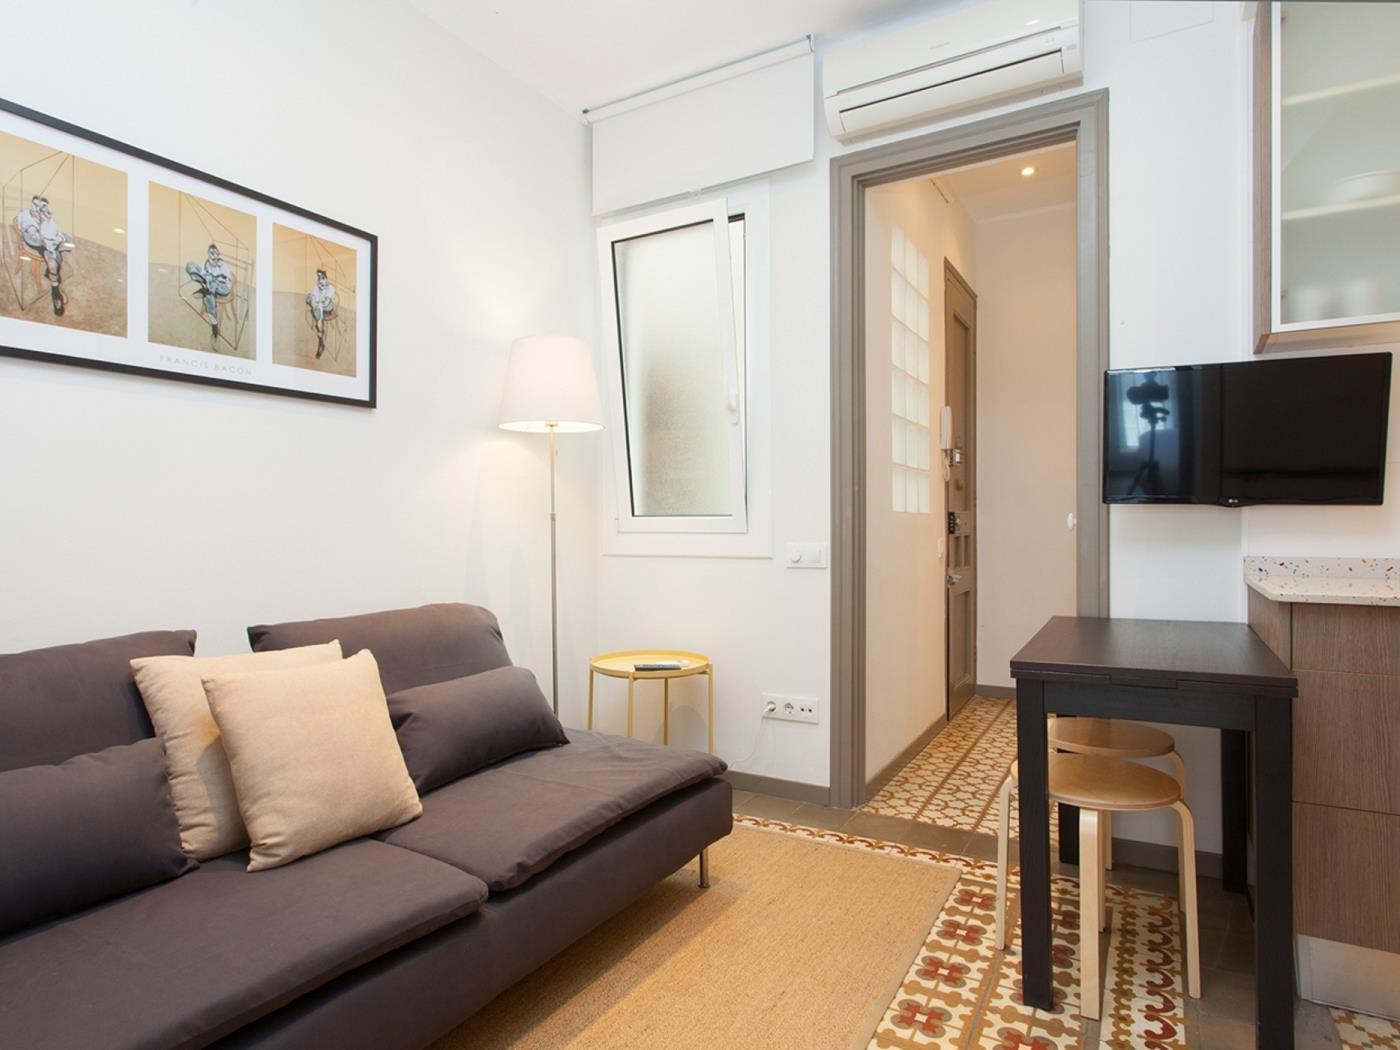 Charmant appartement avec un balcon pour 2 - My Space Barcelona Appartements